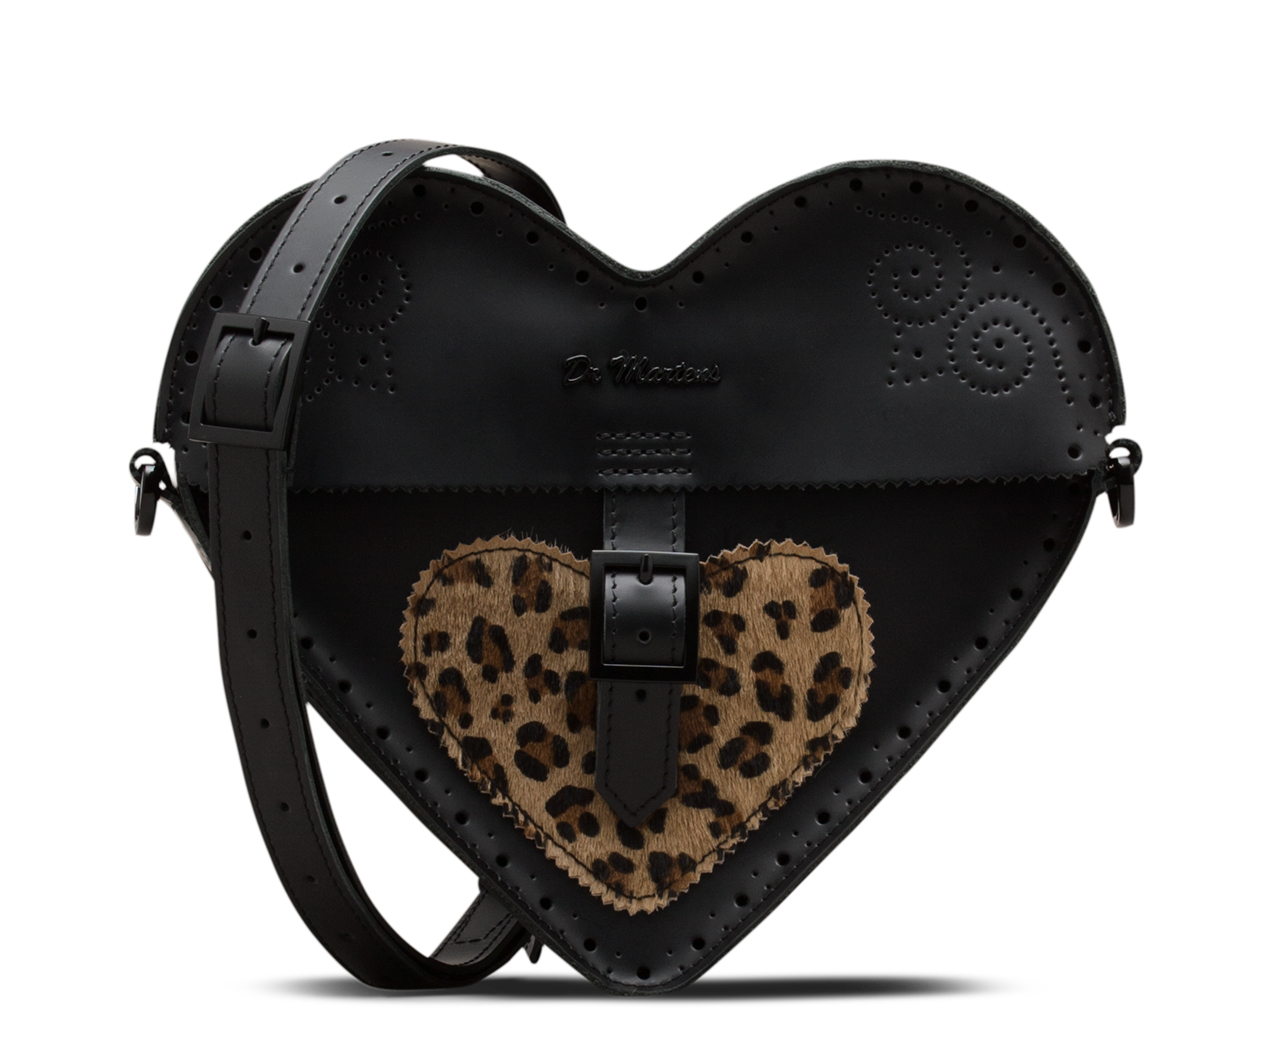 Heart Satchel Bags Amp Satchels The Official Us Dr